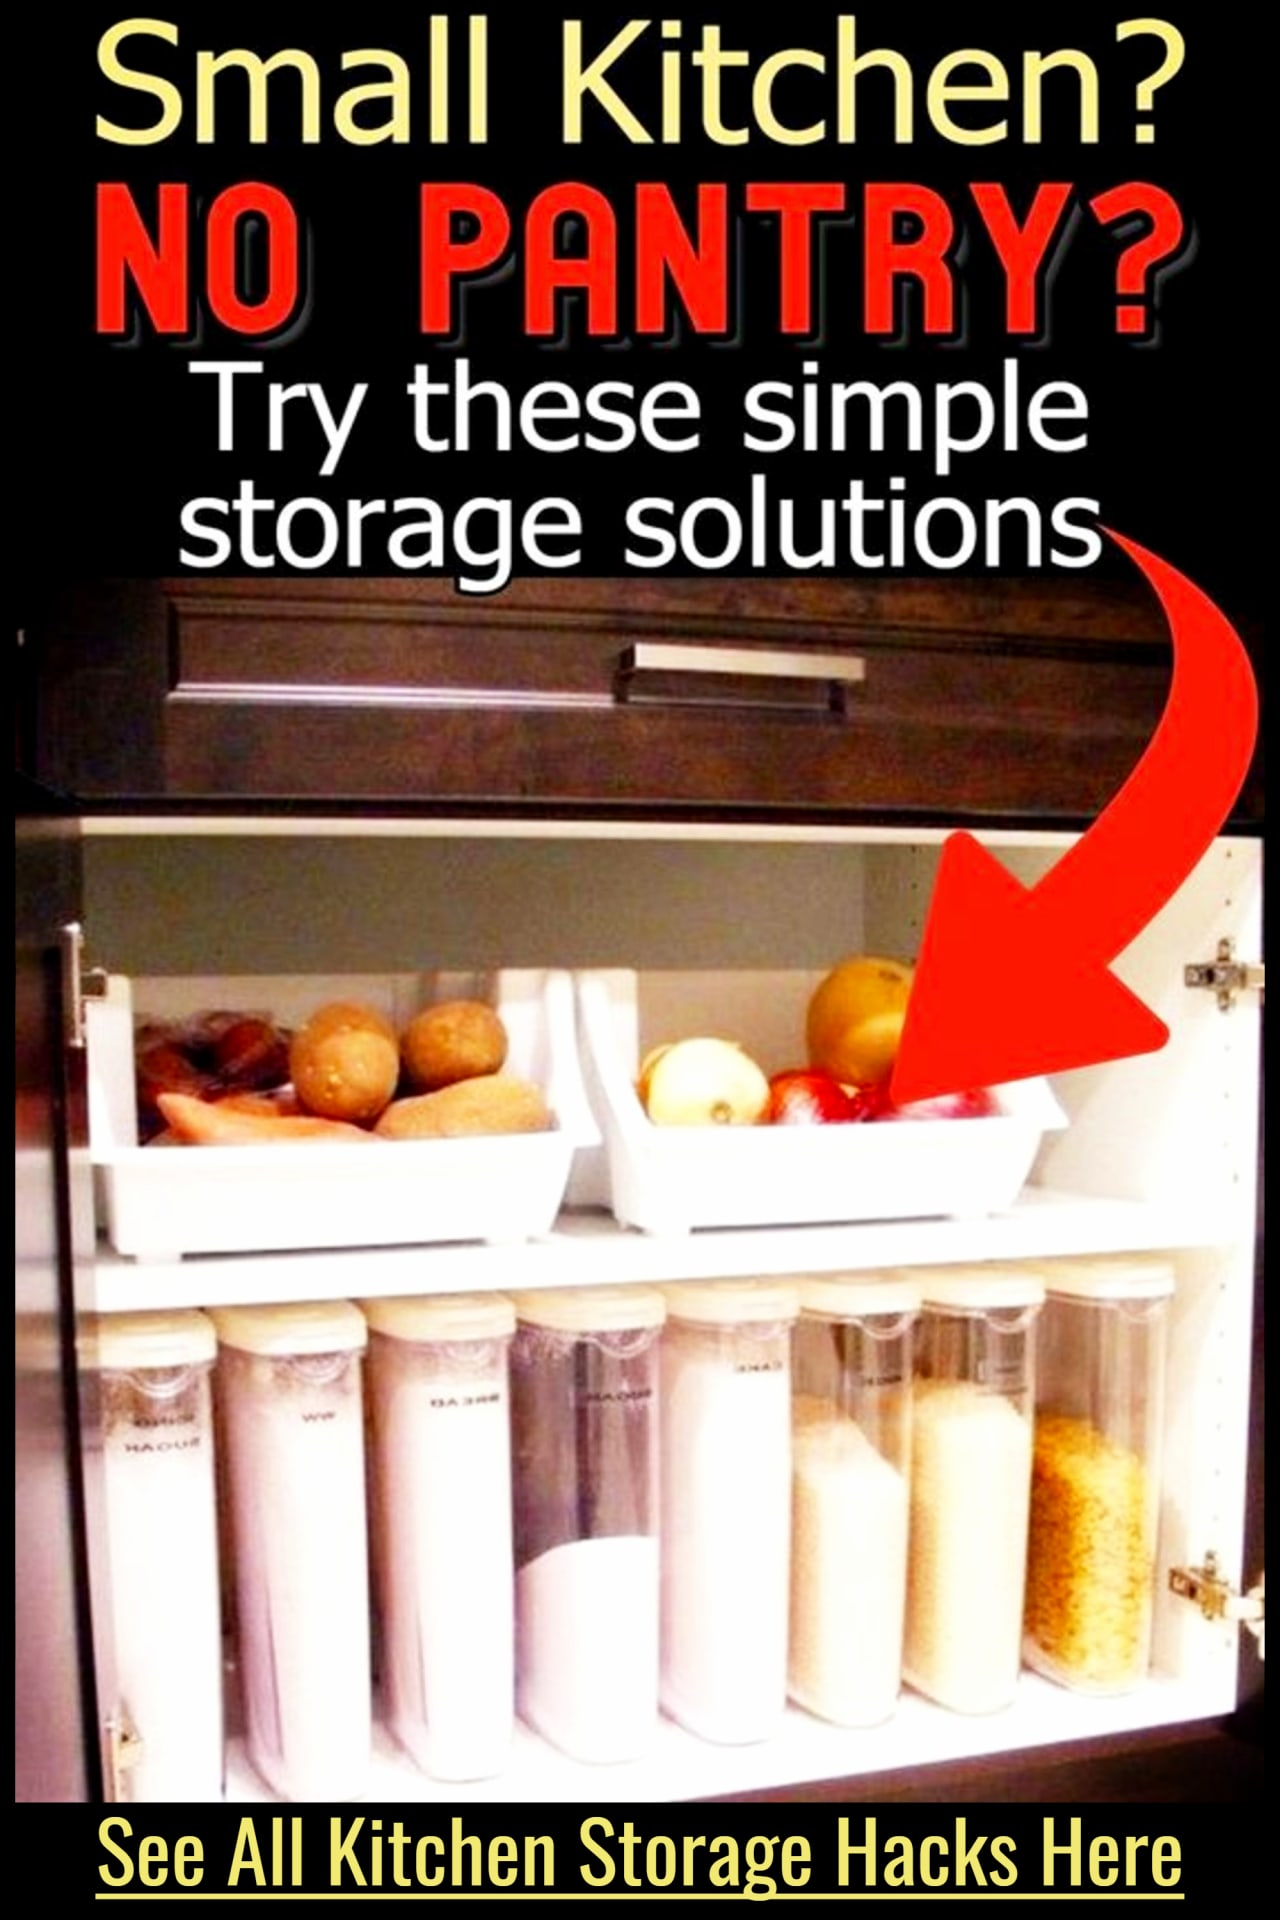 Kitchen storage ideas for small spaces - Creative DIY dollar stores kitchen organizing ideas and storage solutiones - Useful Life Hacks - MIND BLOWN!  Households life hacks and good to know hacks tips and lifehacks - these household hacks, cleaning tips & tricks are such helpful hints and life changing lifehacks